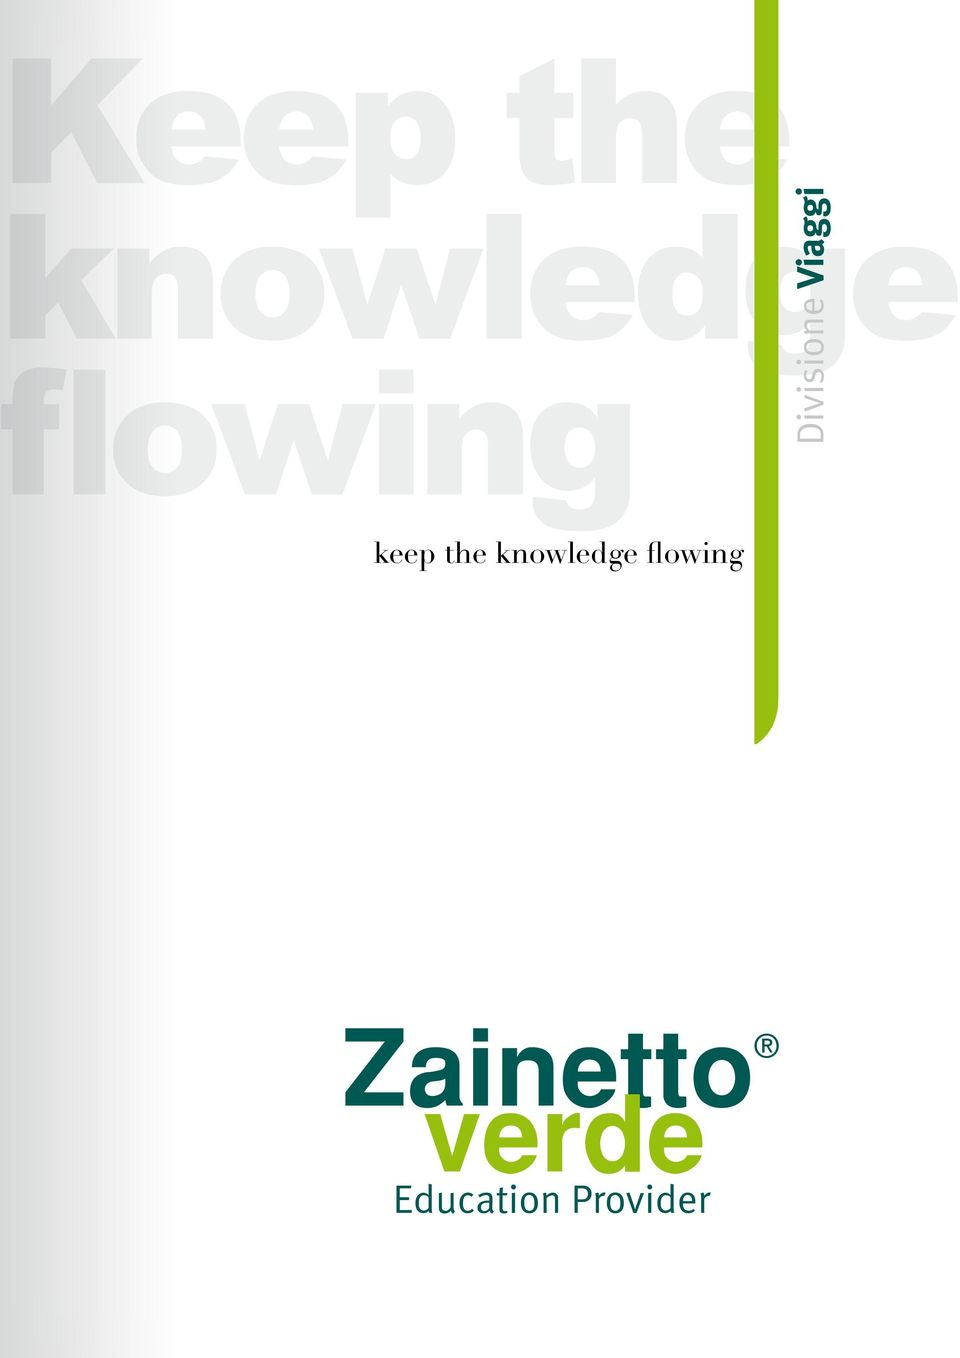 knowledge flowing